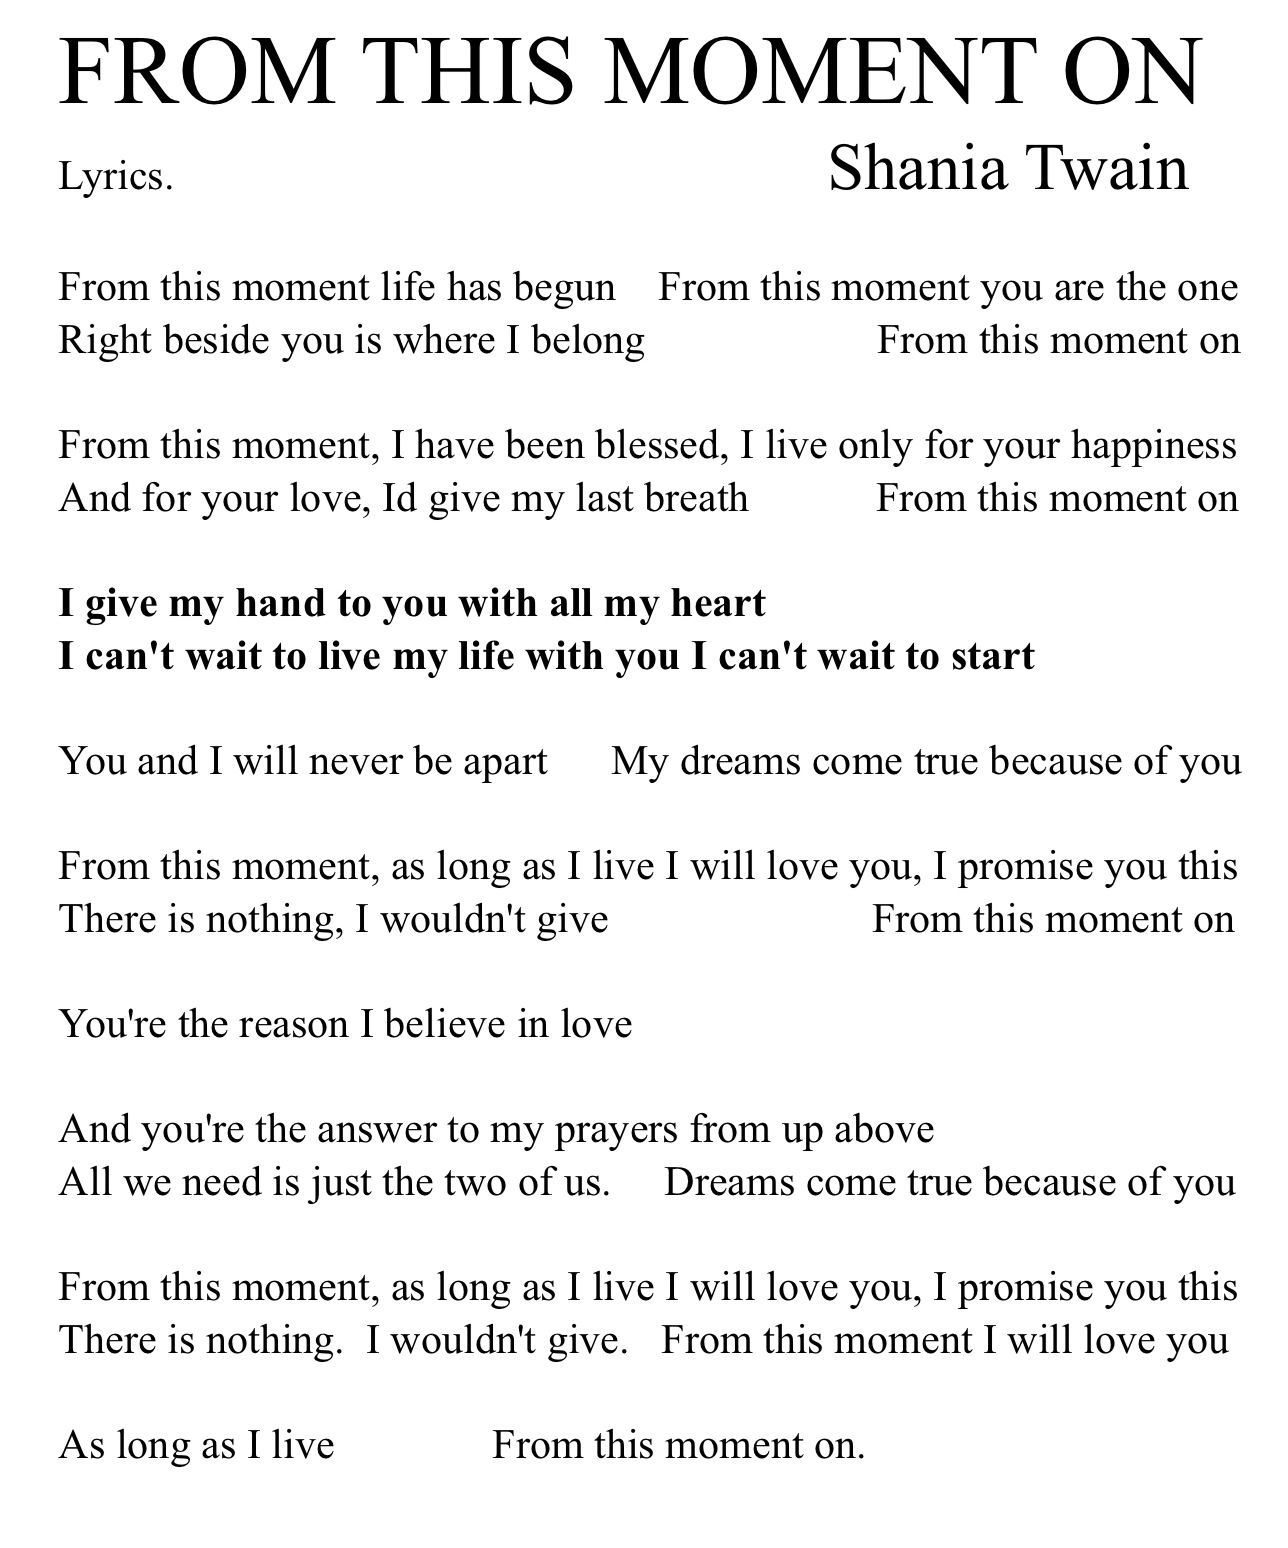 FROM THIS MOMENT ON. Lyrics. Shania Twain.